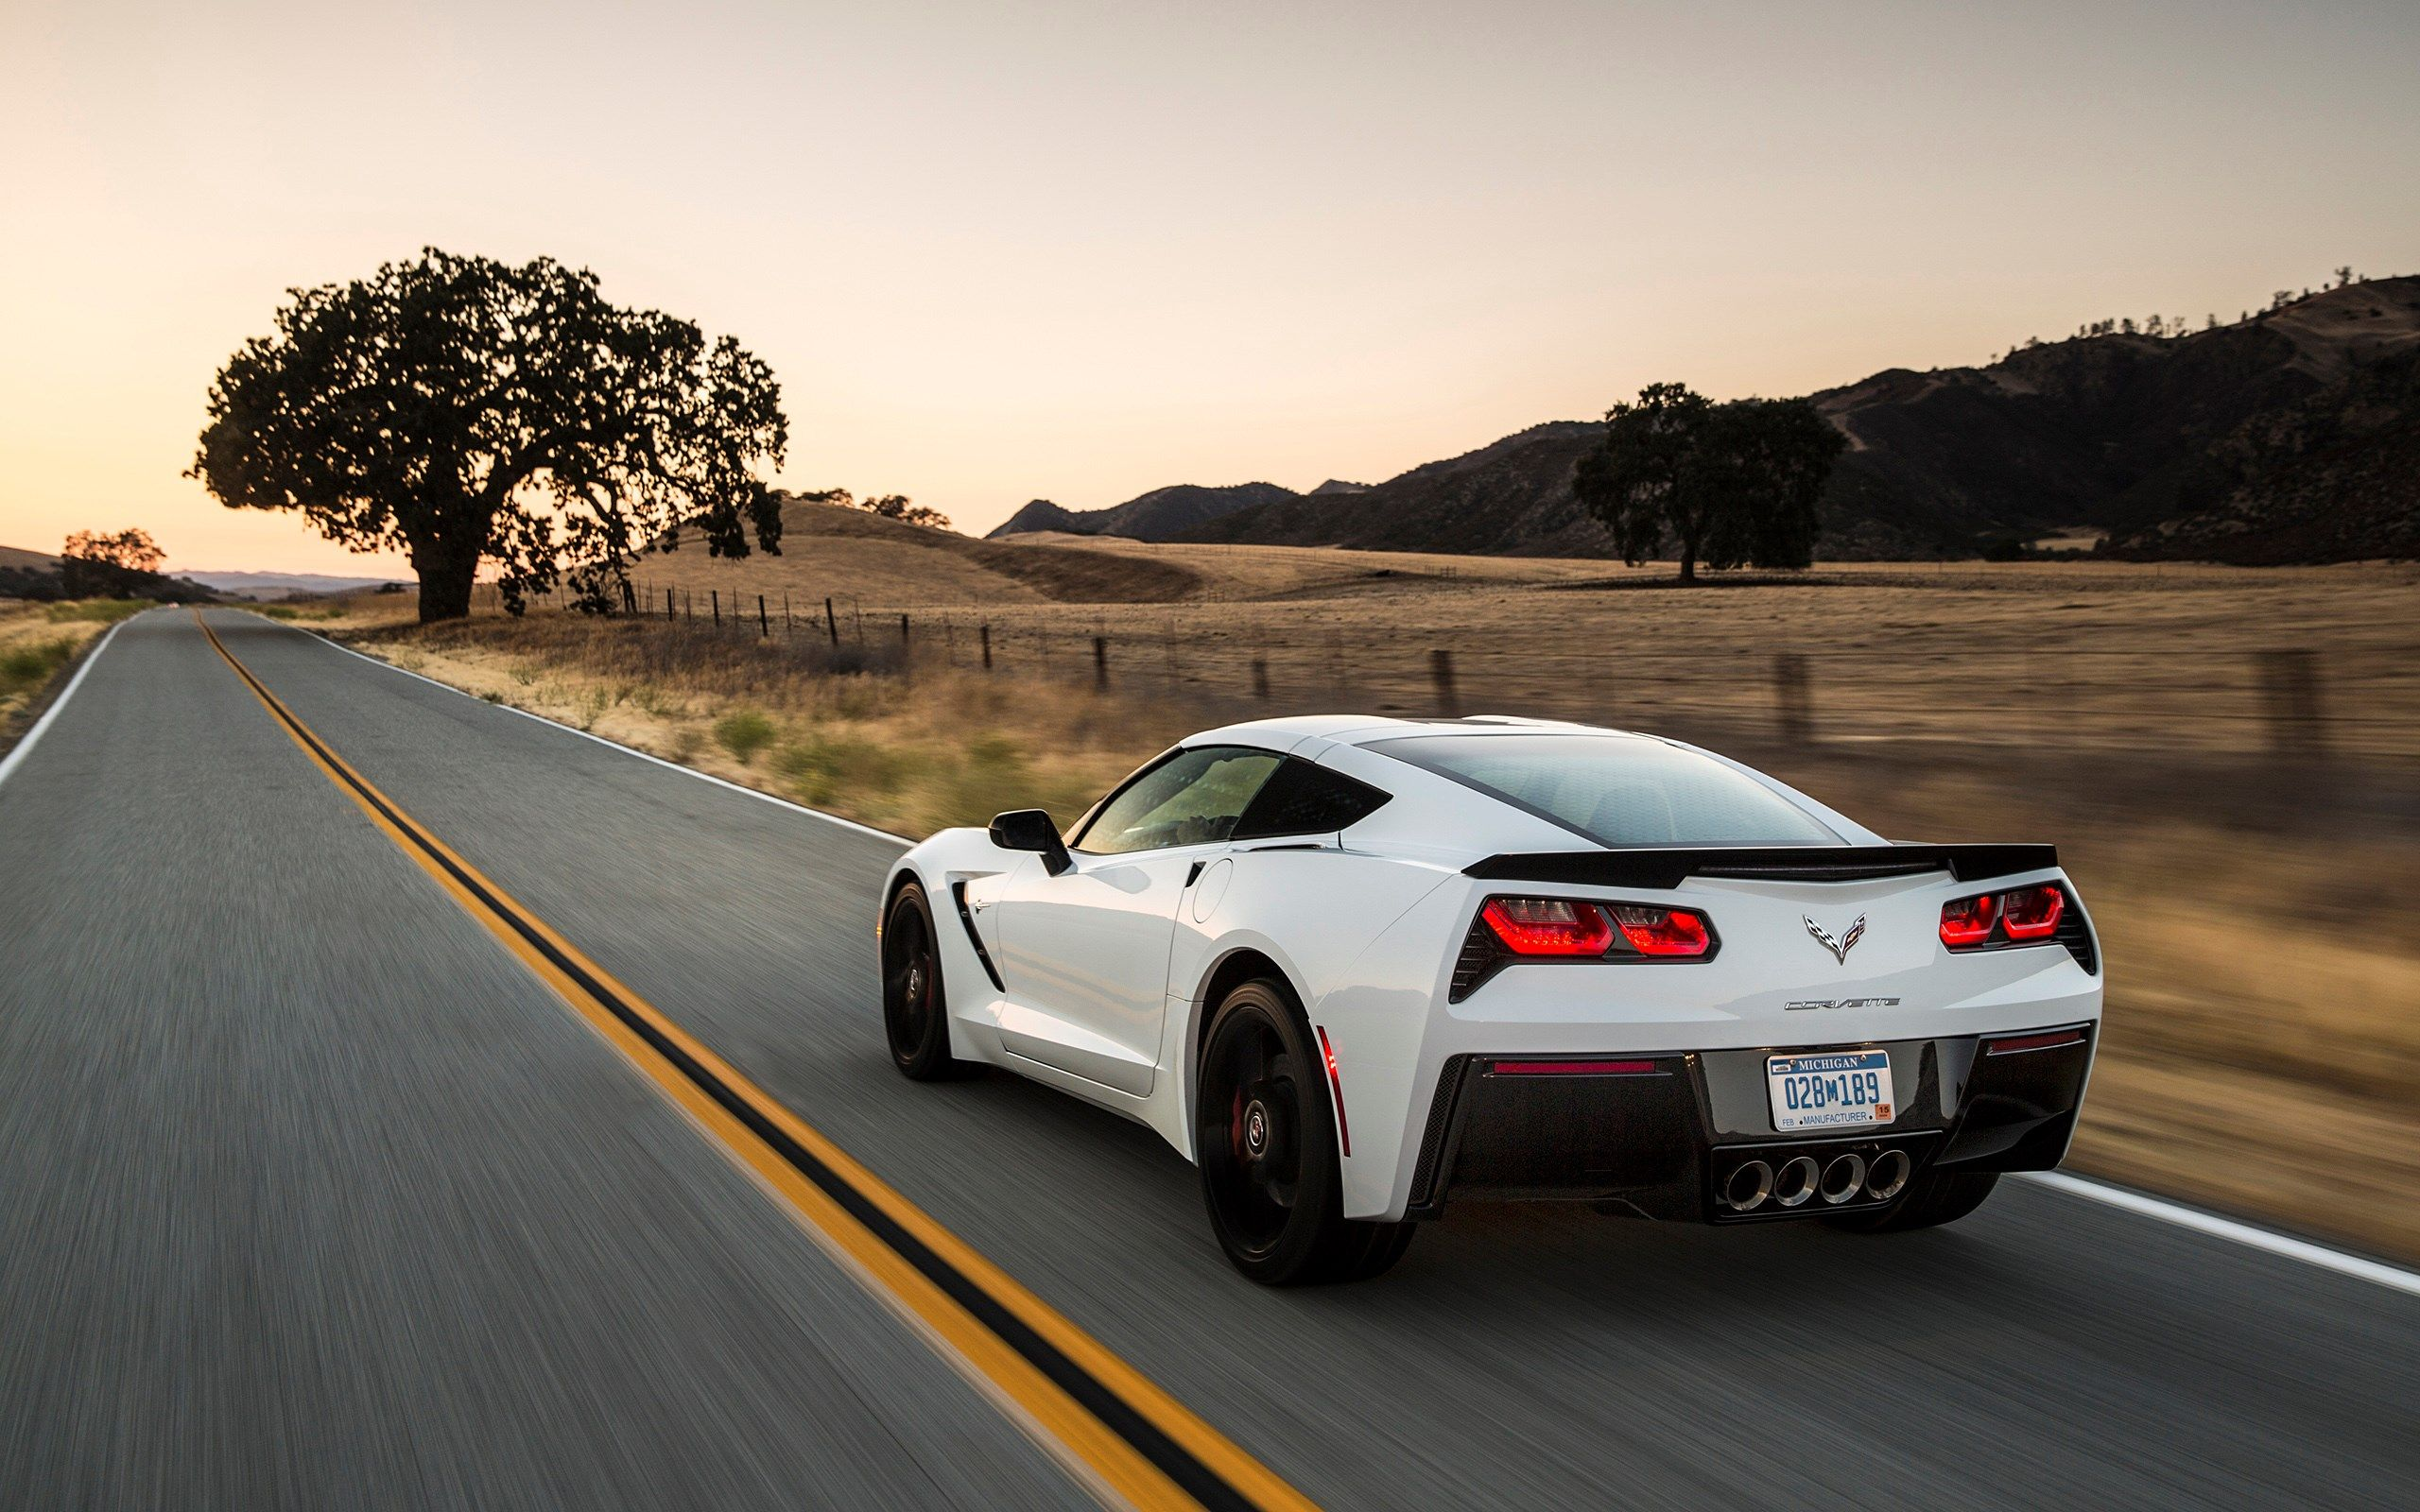 Irvin robertson chevrolet corvette wallpapers 1080p high quality 2560x1600 px